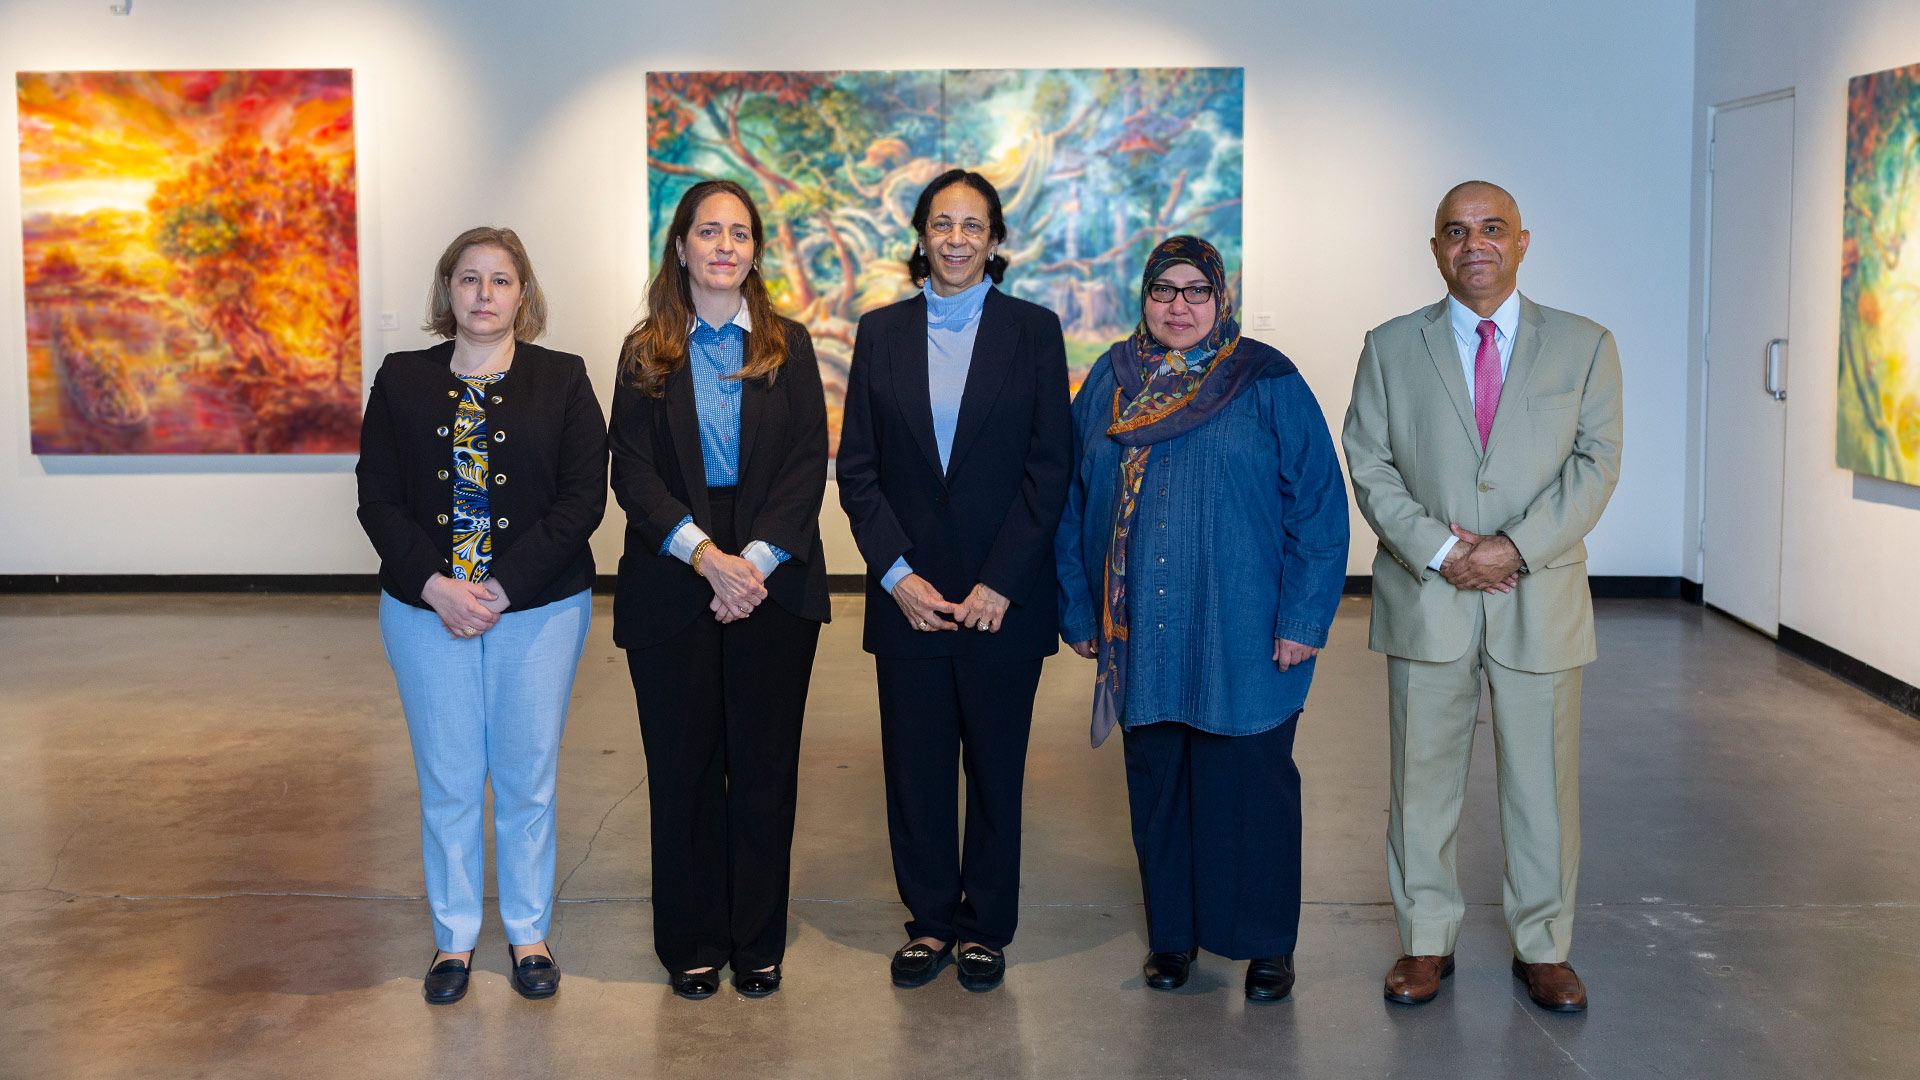 Omani ambassador returns to UHCL, plans conference on energy, environment